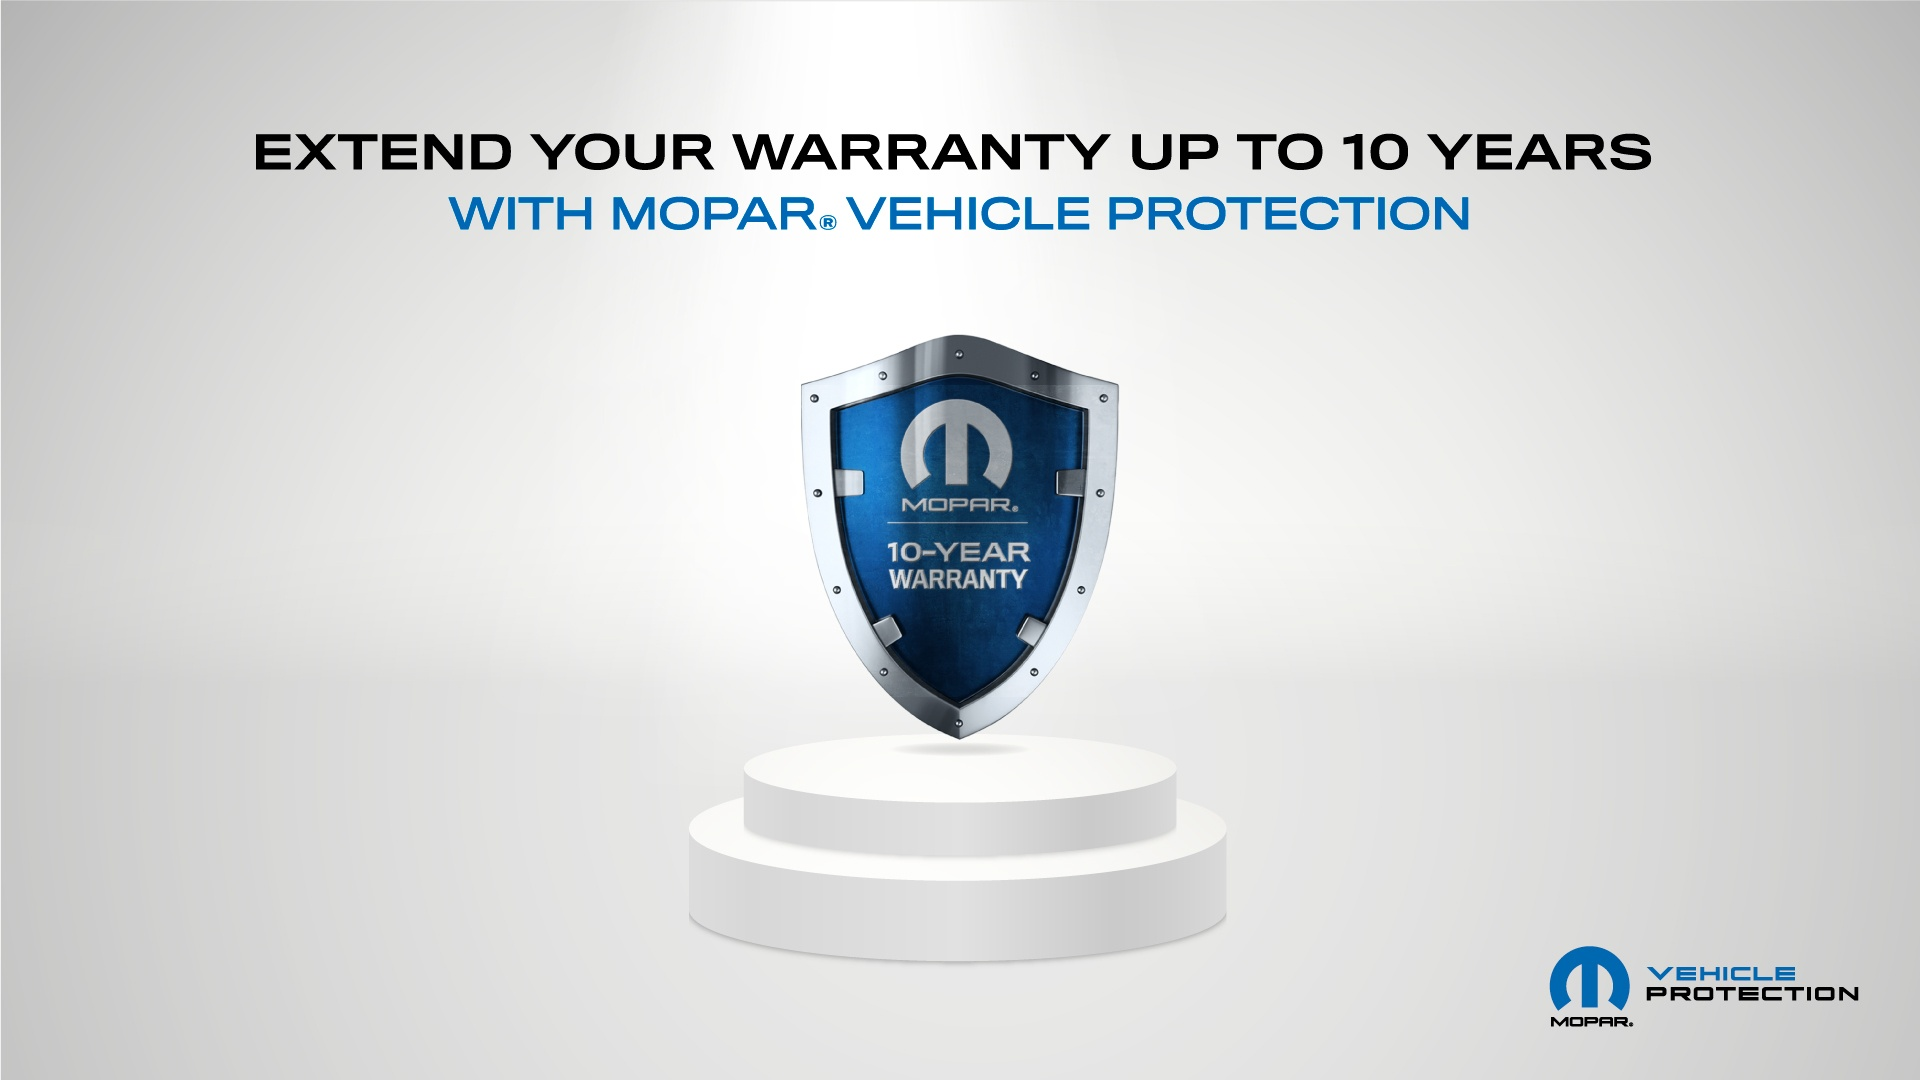 Mopar Launches Region's First 10-Year Factory-Backed Warranty for FCA Vehicle Owners